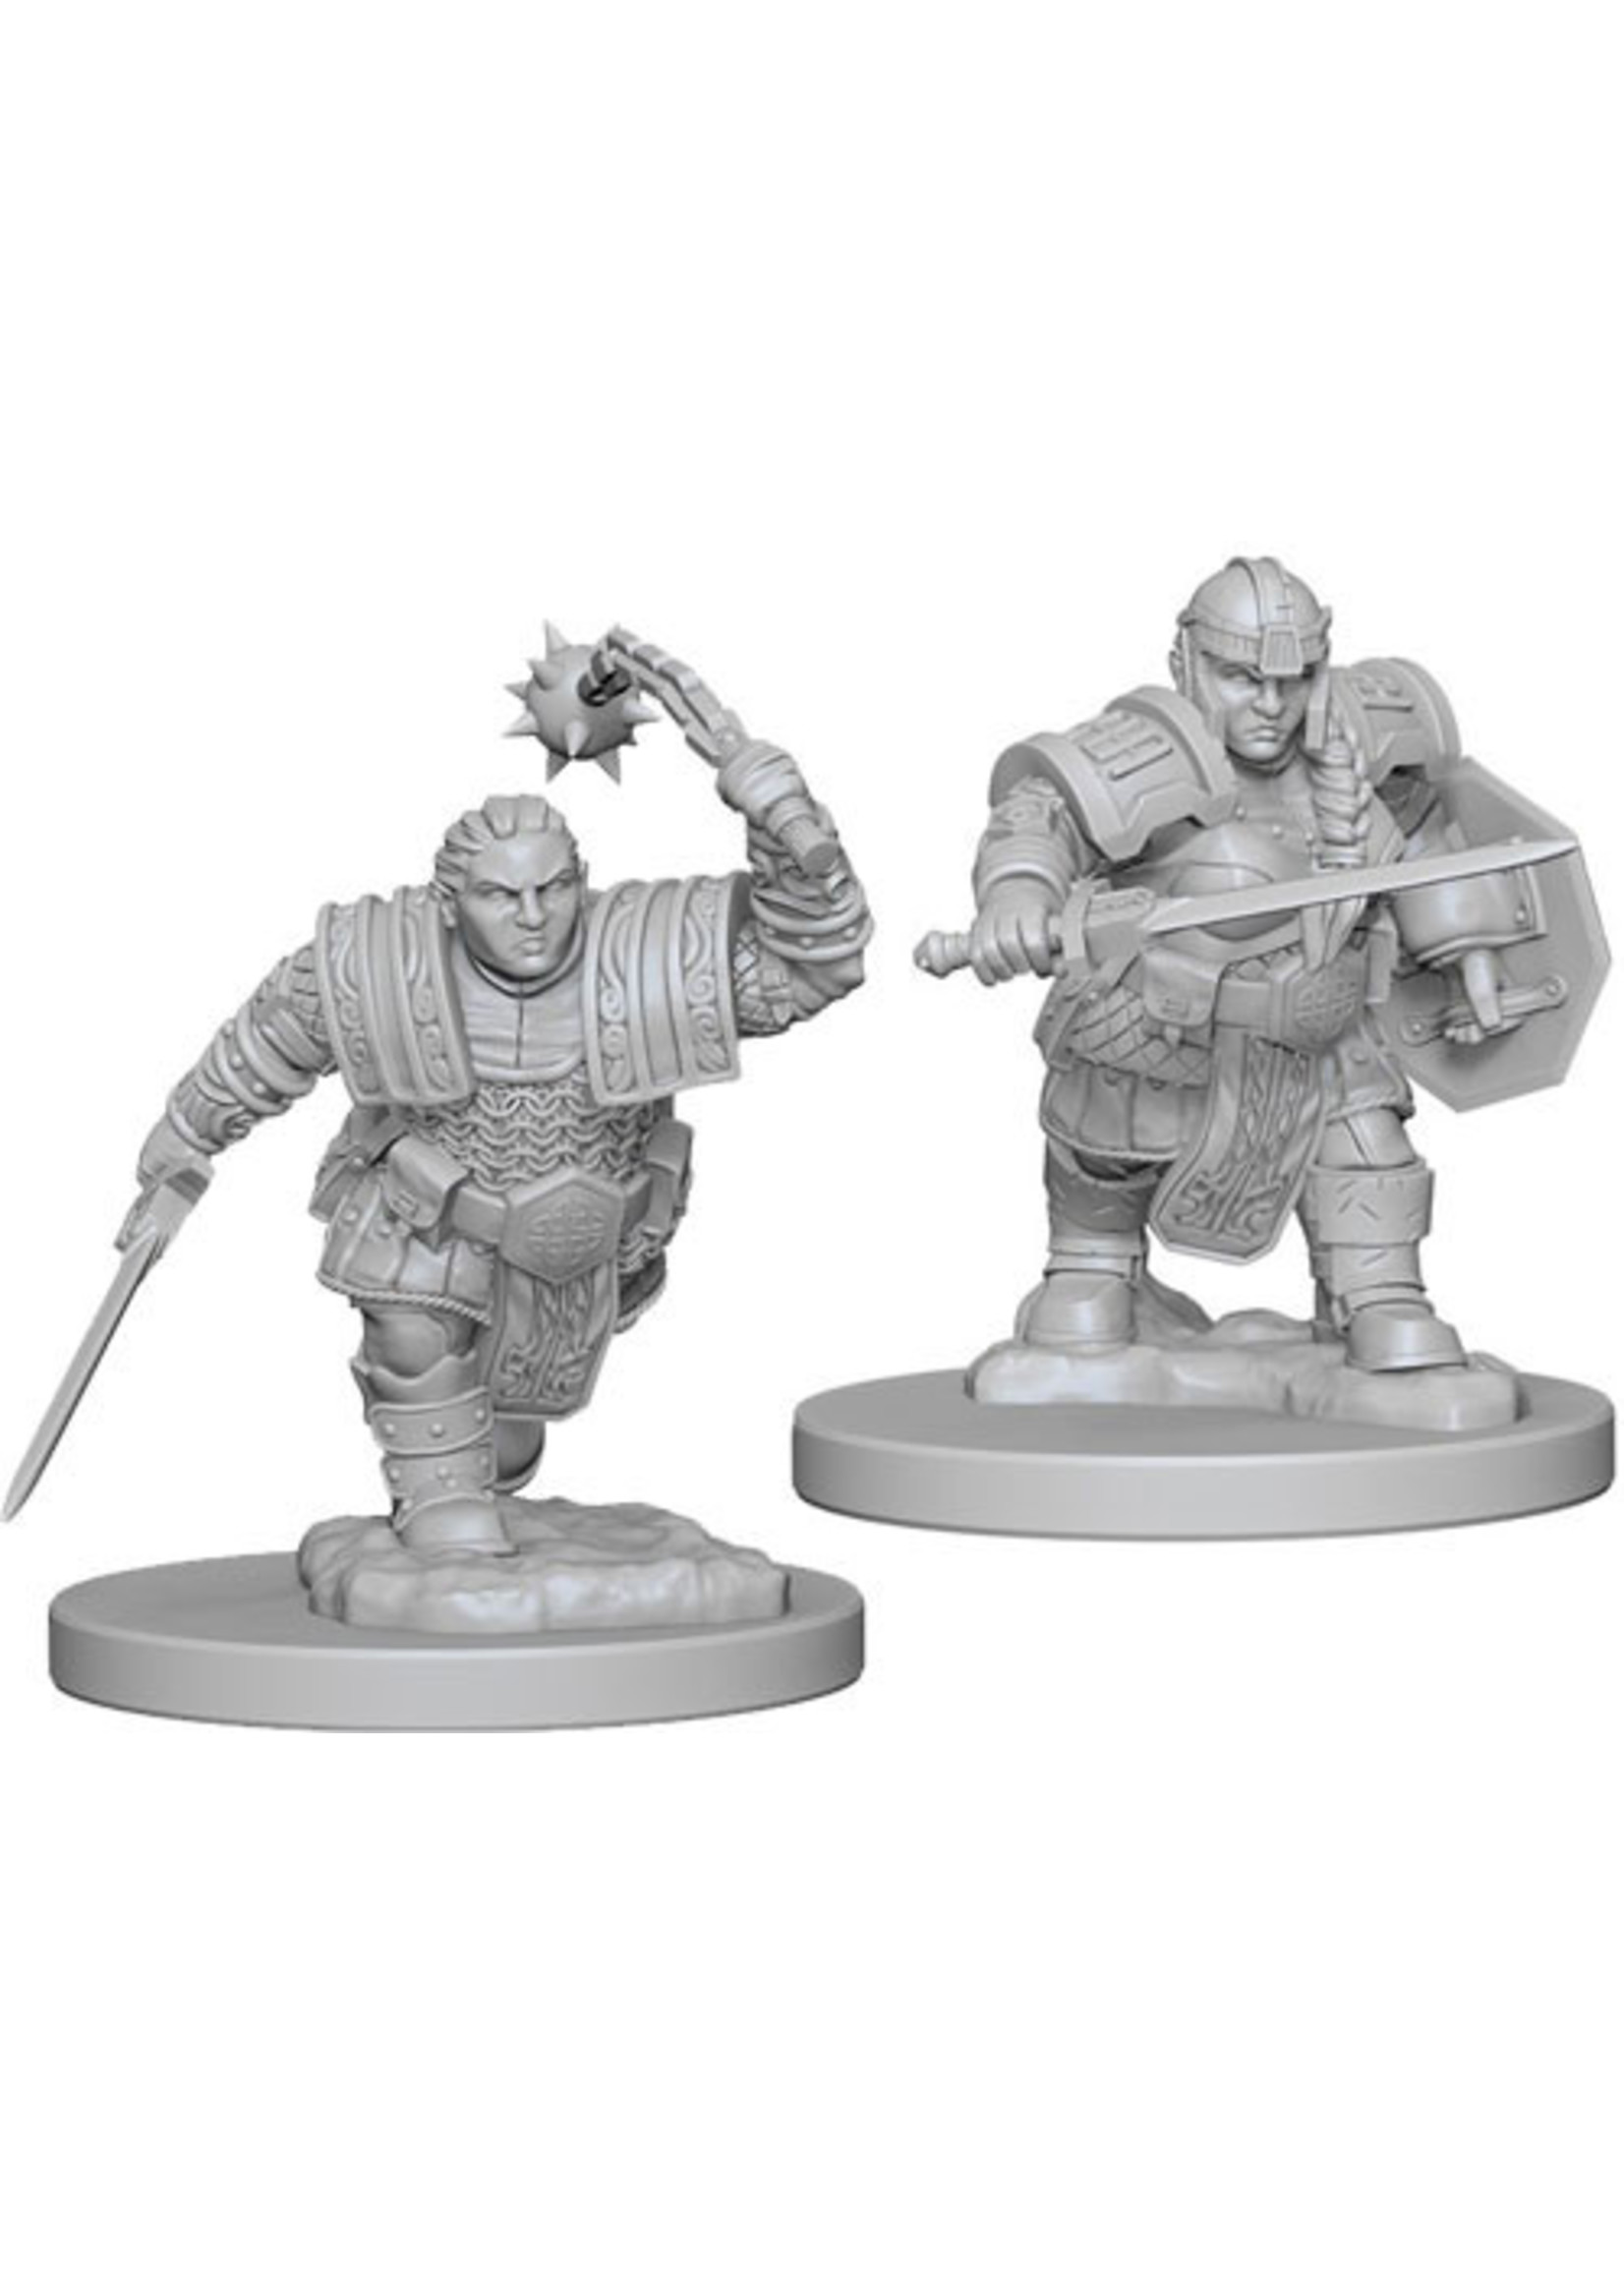 Dungeons & Dragons Nolzur's Marvelous Unpainted Miniatures: W2 Dwarf Female Fighter